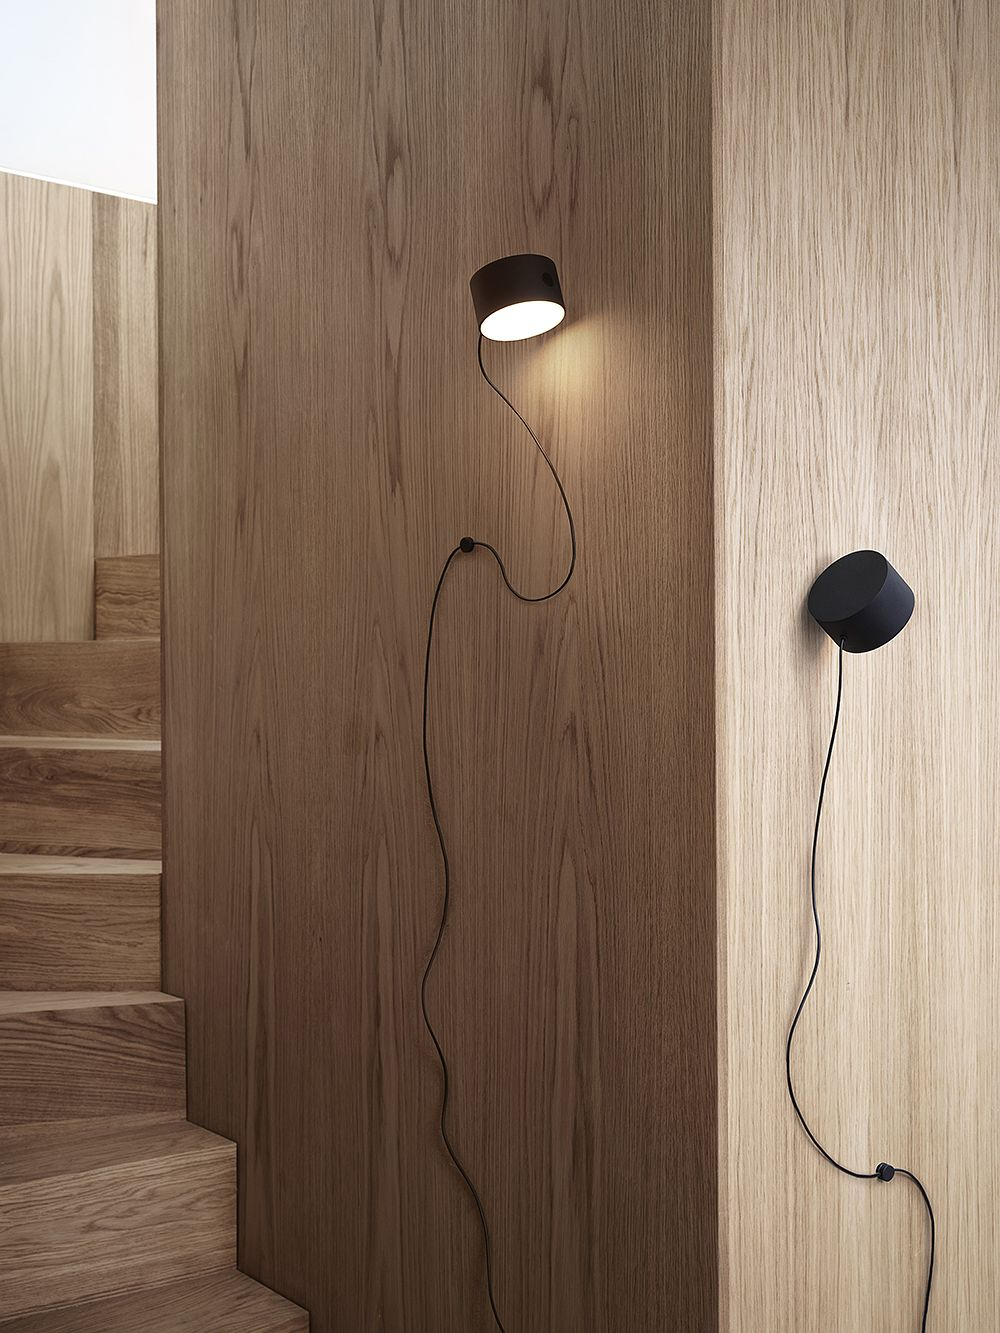 Muuto's Post wall lamp attached to the wall.